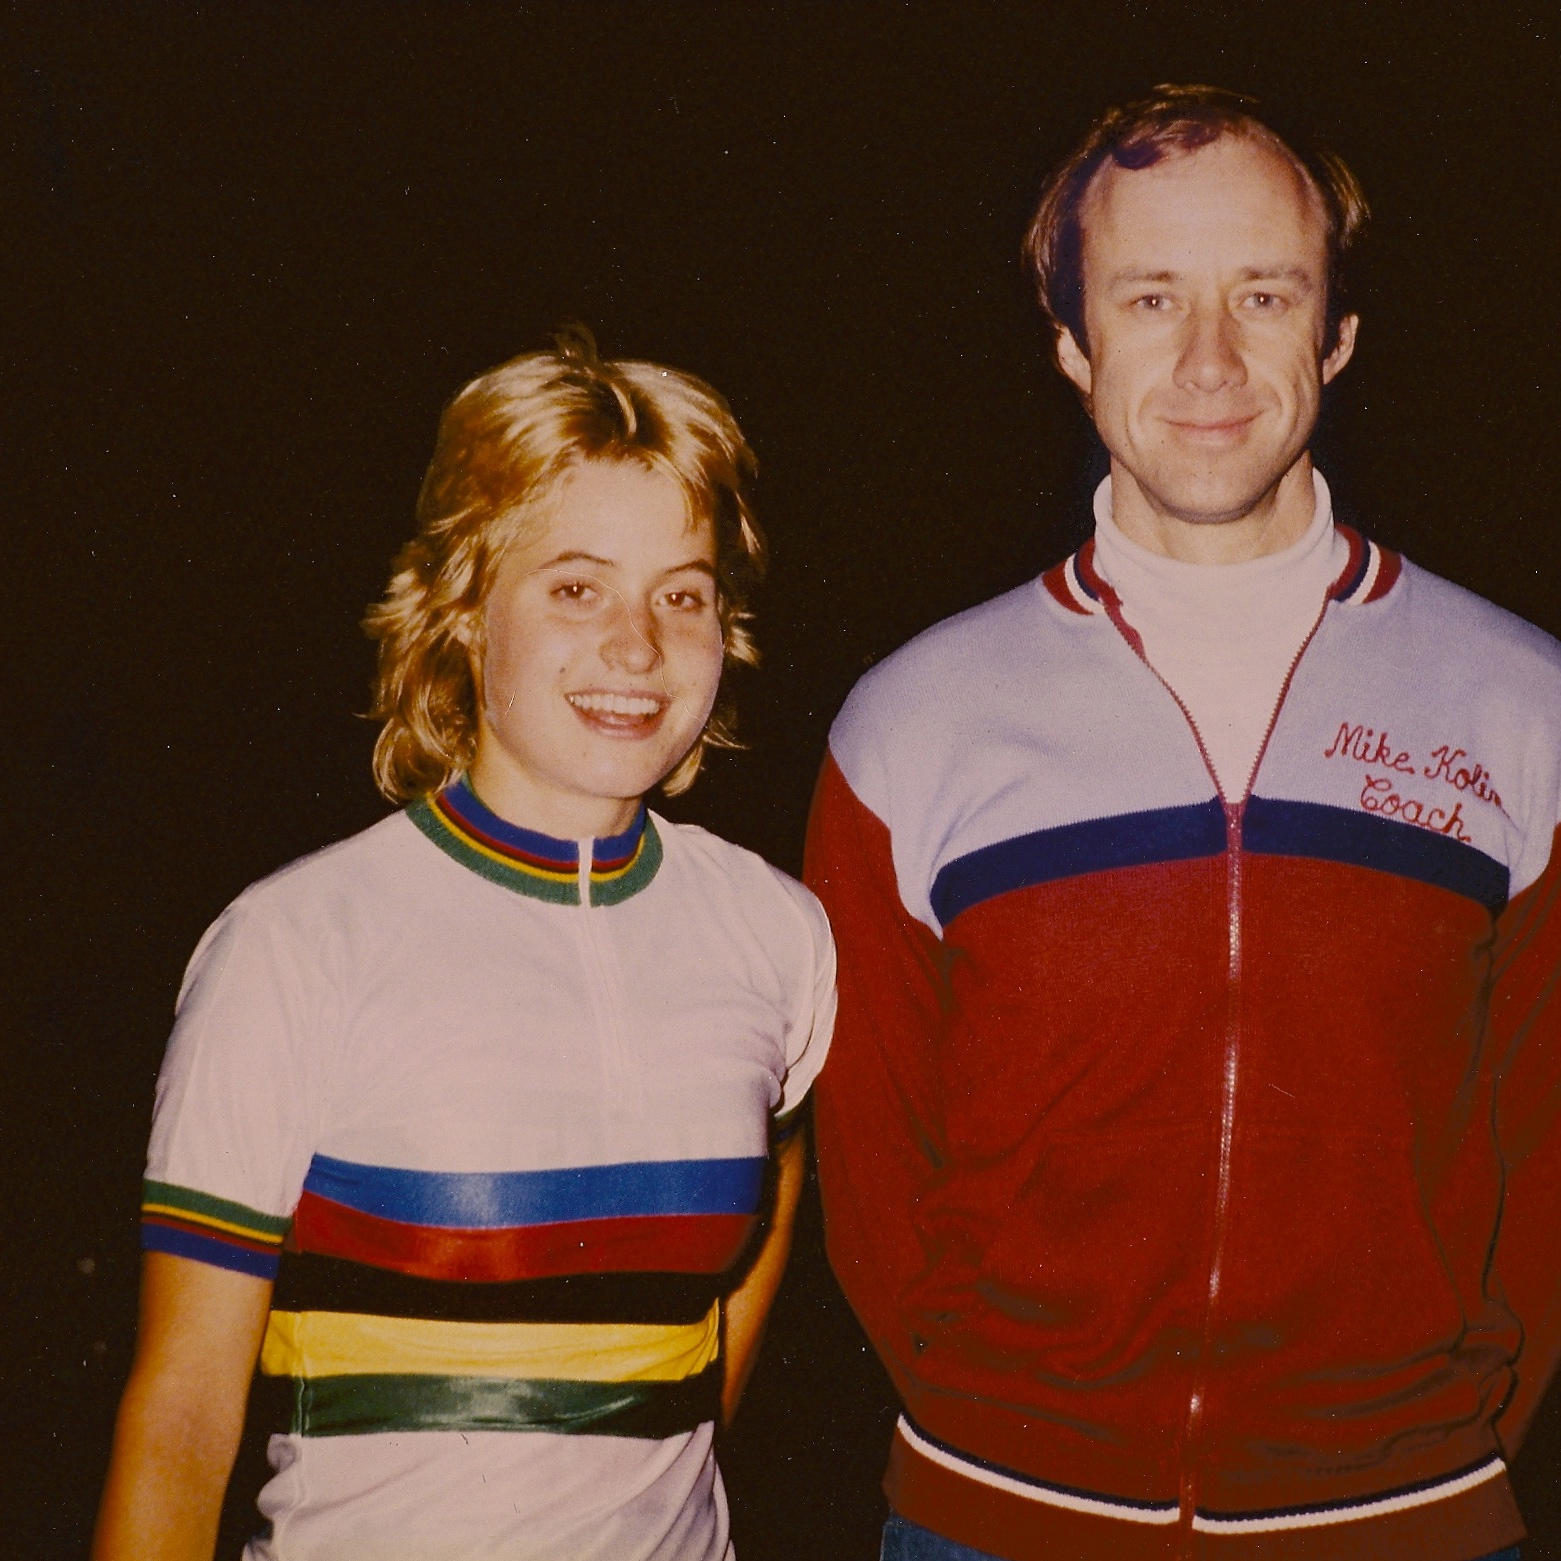 "Rebecca Twigg   is an American former racing cyclist , who won six world track cycling championships in the individual pursuit. She also won 16 US championships (the first - the individual time trial - when she was 18) and two Olympic medals, the Silver medal in the 1984 road race in LA, and a Bronze medal in the pursuit in Spain in 1992. Twigg won the first three editions of the Womens Challenge  on the road. Twigg was a three-time Olympian (1984, 1992, and 1996). However, her final Olympic appearance, in Atlanta in 1996, ended in controversy when she quit the team in a disagreement with the coach Chris Carmichael and the US Cycling Federation. The federation had invested in the development of the so-called SuperBike"". Twigg, after using the bike earlier in the Games, refused to ride it, citing poor individual fit and claiming that pressure from the staff on her to use the SuperBike and their refusal to grant accreditation to her personal coach left her defocused."